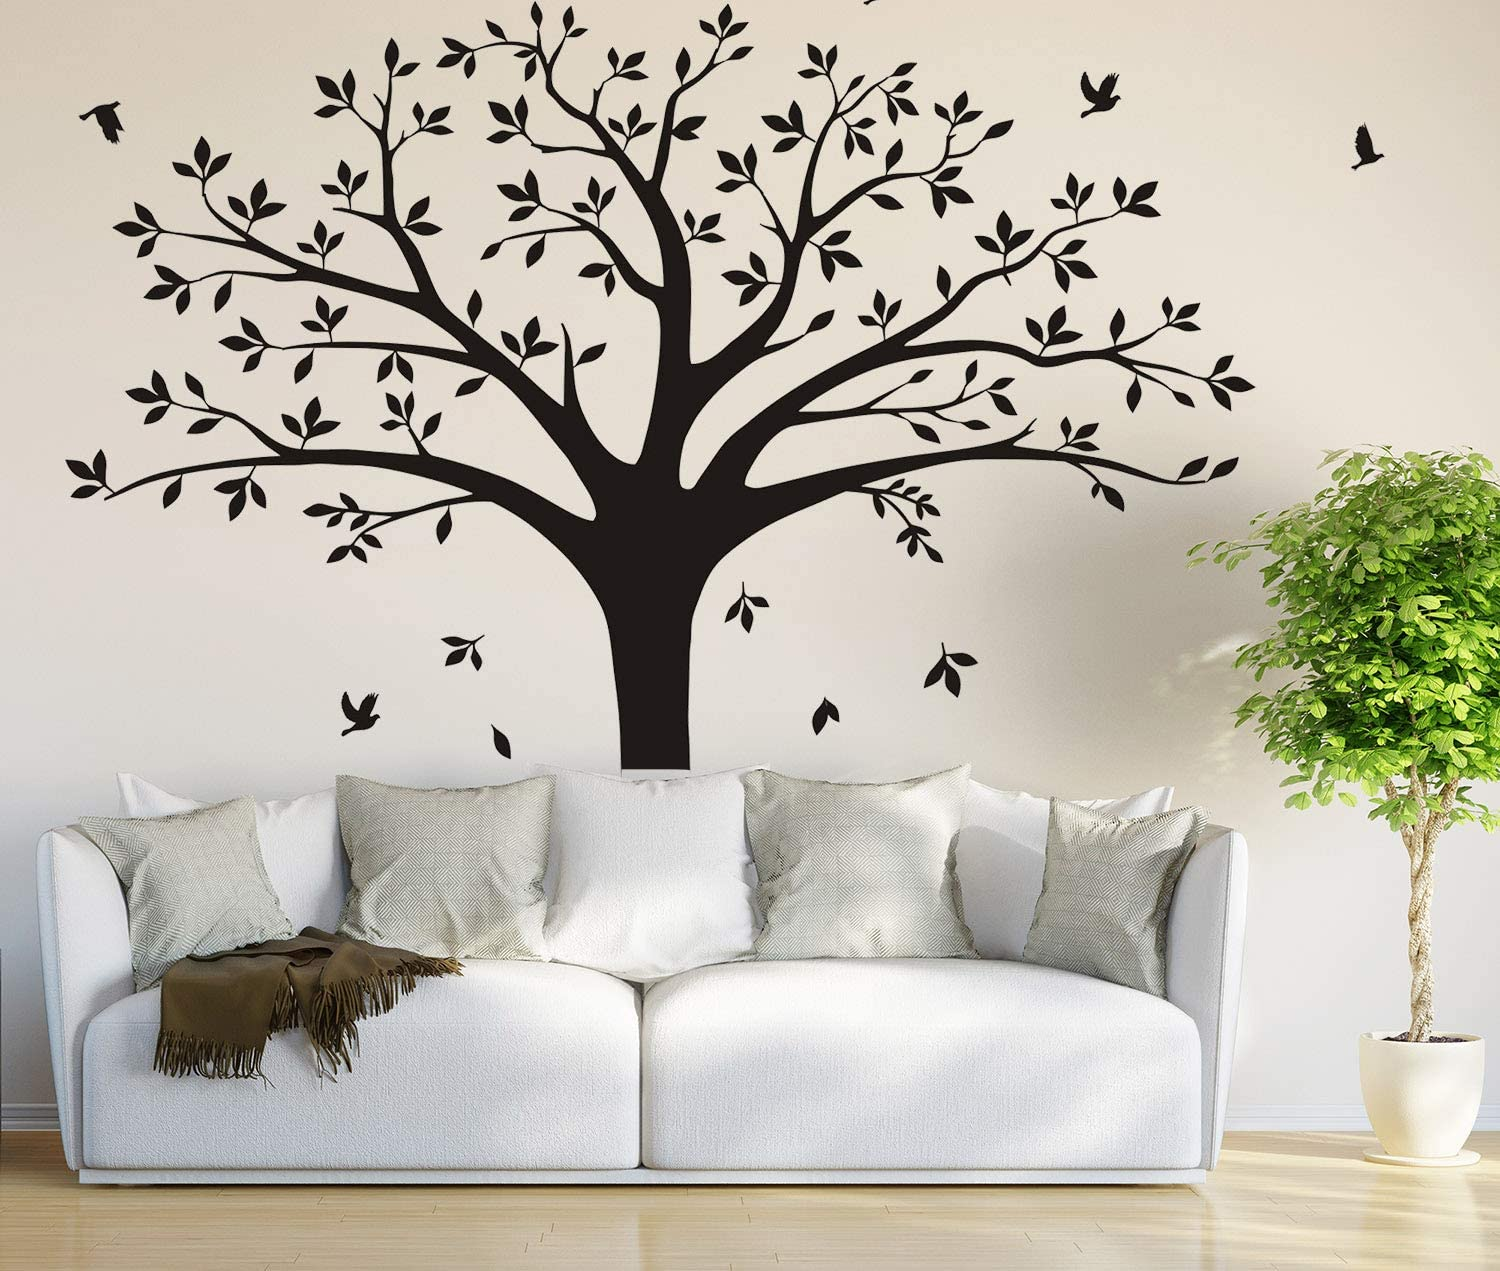 Large Family Tree Photo Frames Wall Decal Vinyl Wall Stickers for Home Decoration(220 x 250 cm) (Black)